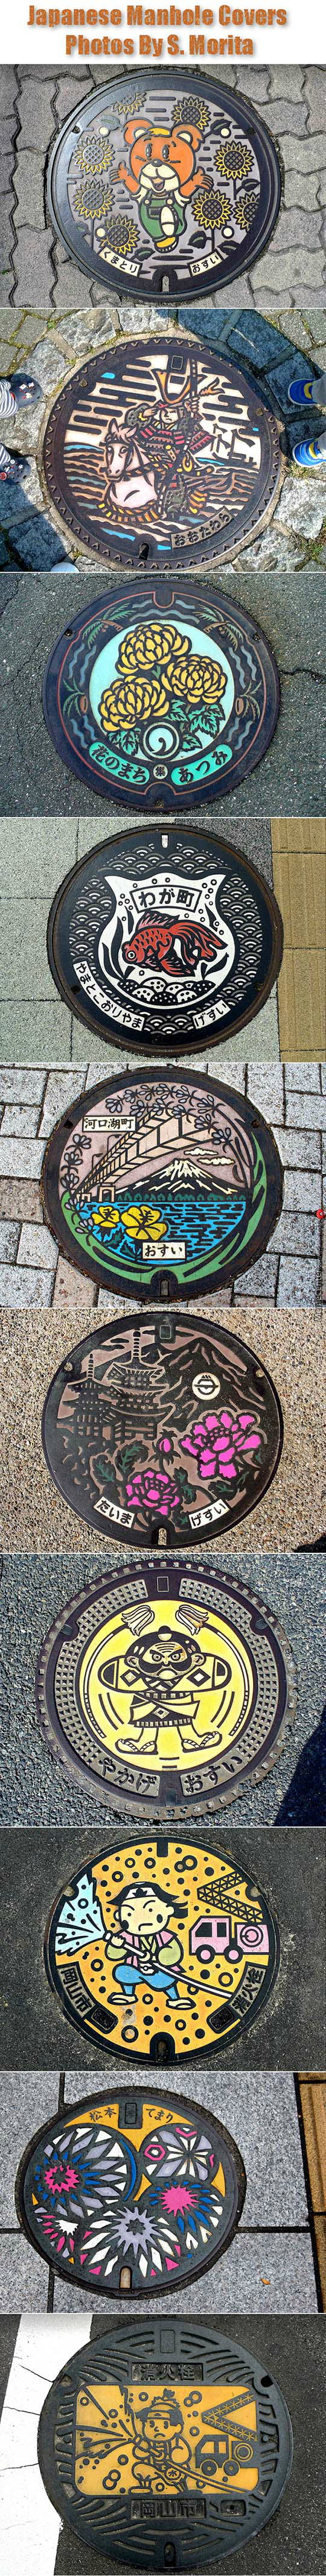 Only In Japan: Manhole Covers